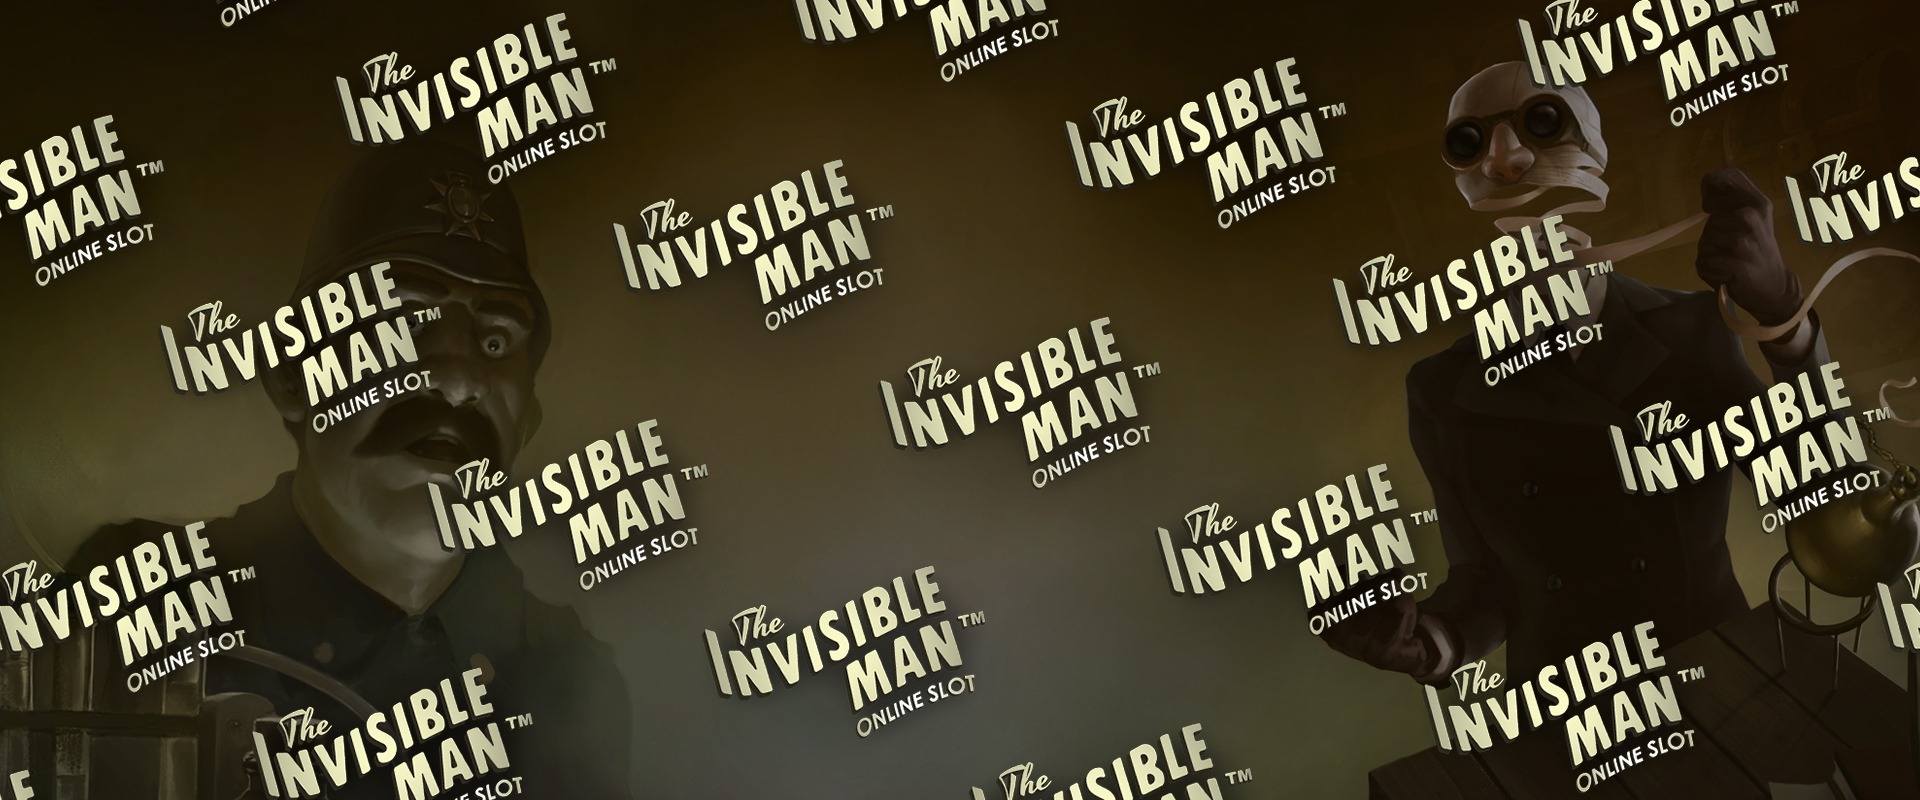 Play The Invisible Man Slot At Bethard Bethard Blog